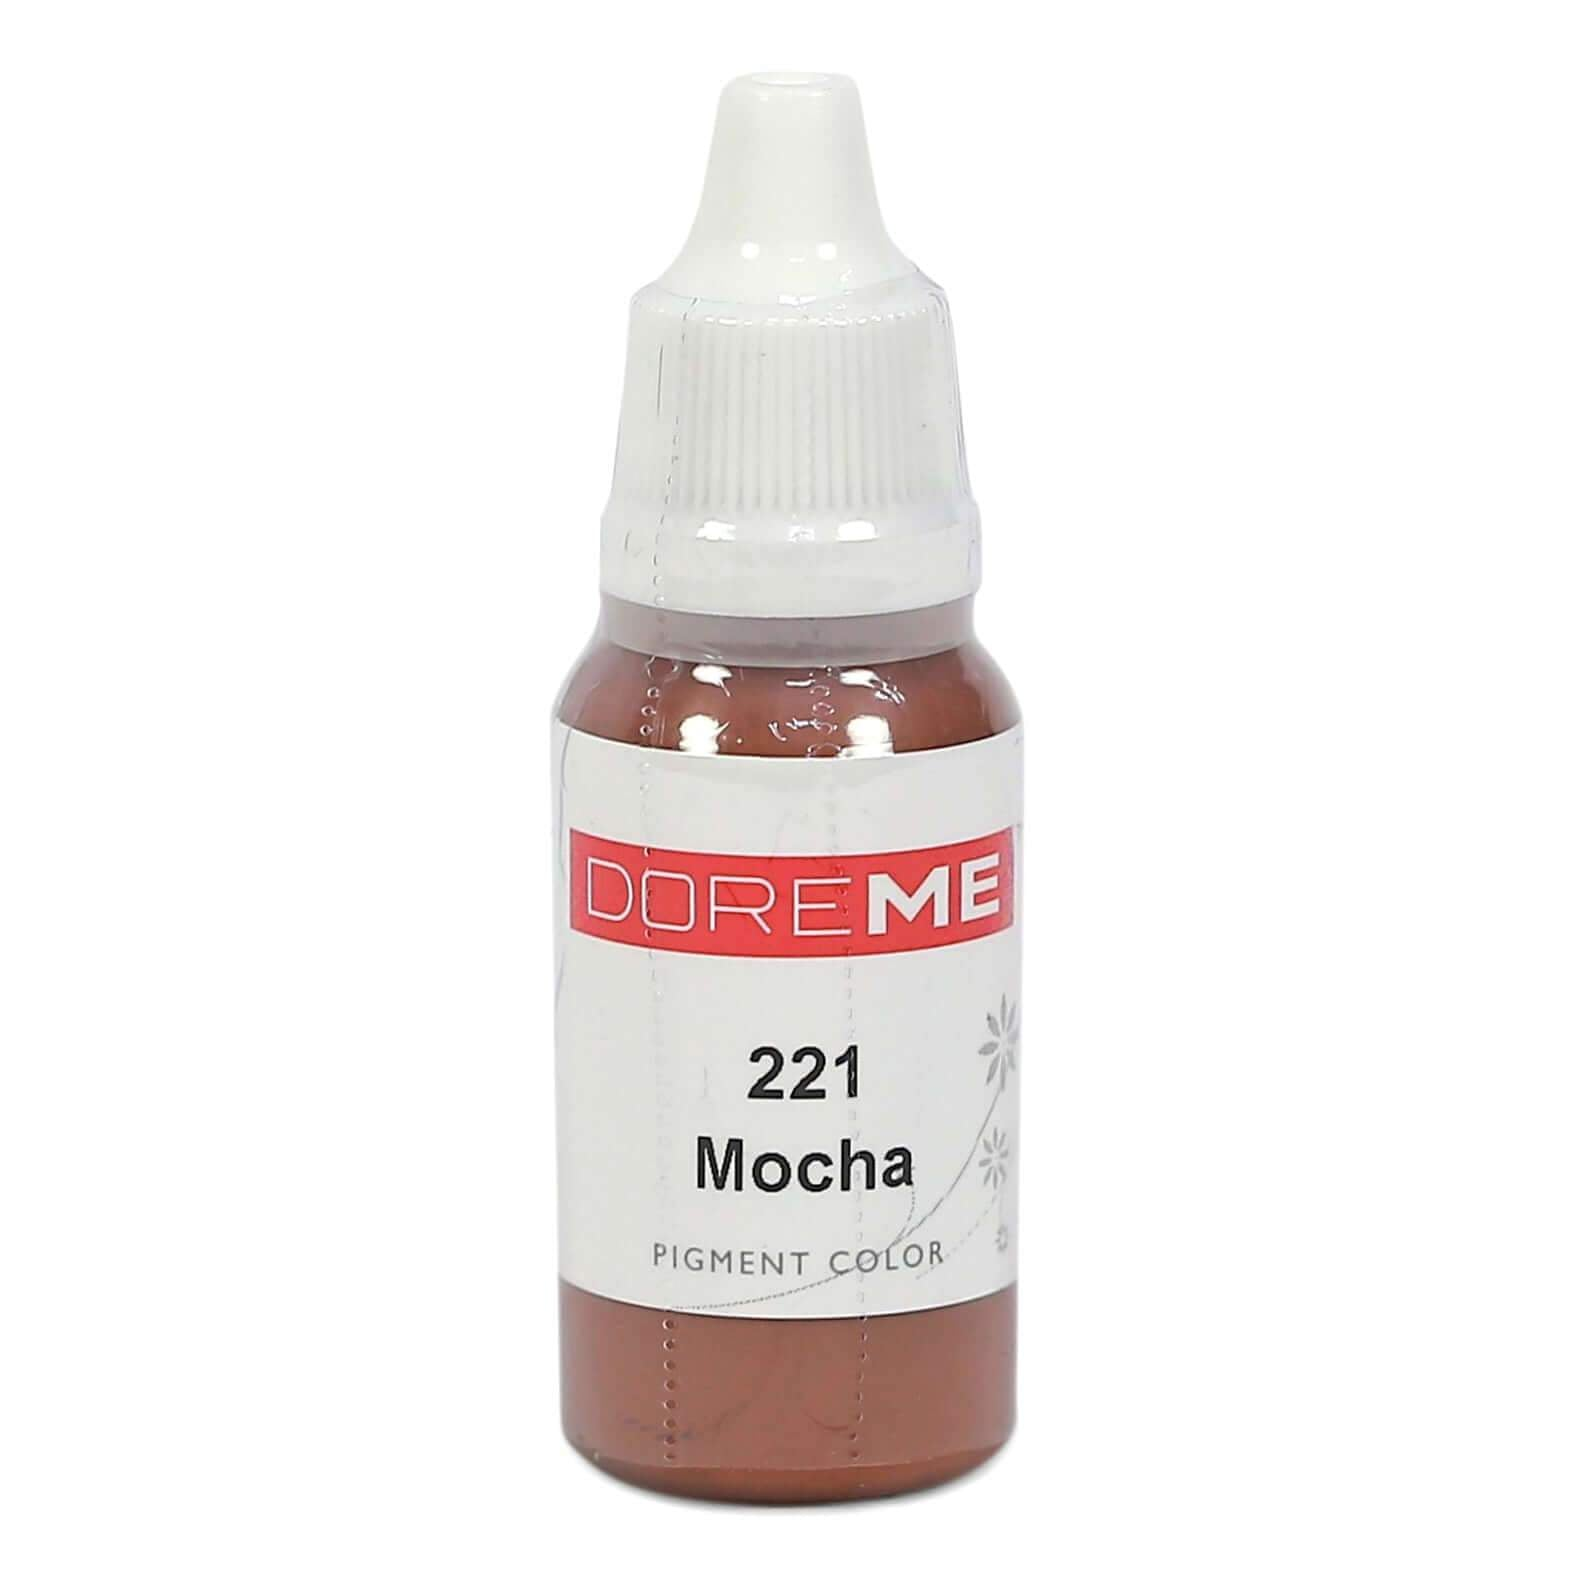 Permanent Makeup pigments Doreme Micropigmentation Eyebrow, Eyeliner, Lip Colours 221 Mocha (c) - Beautiful Ink UK trade and wholesale supplier